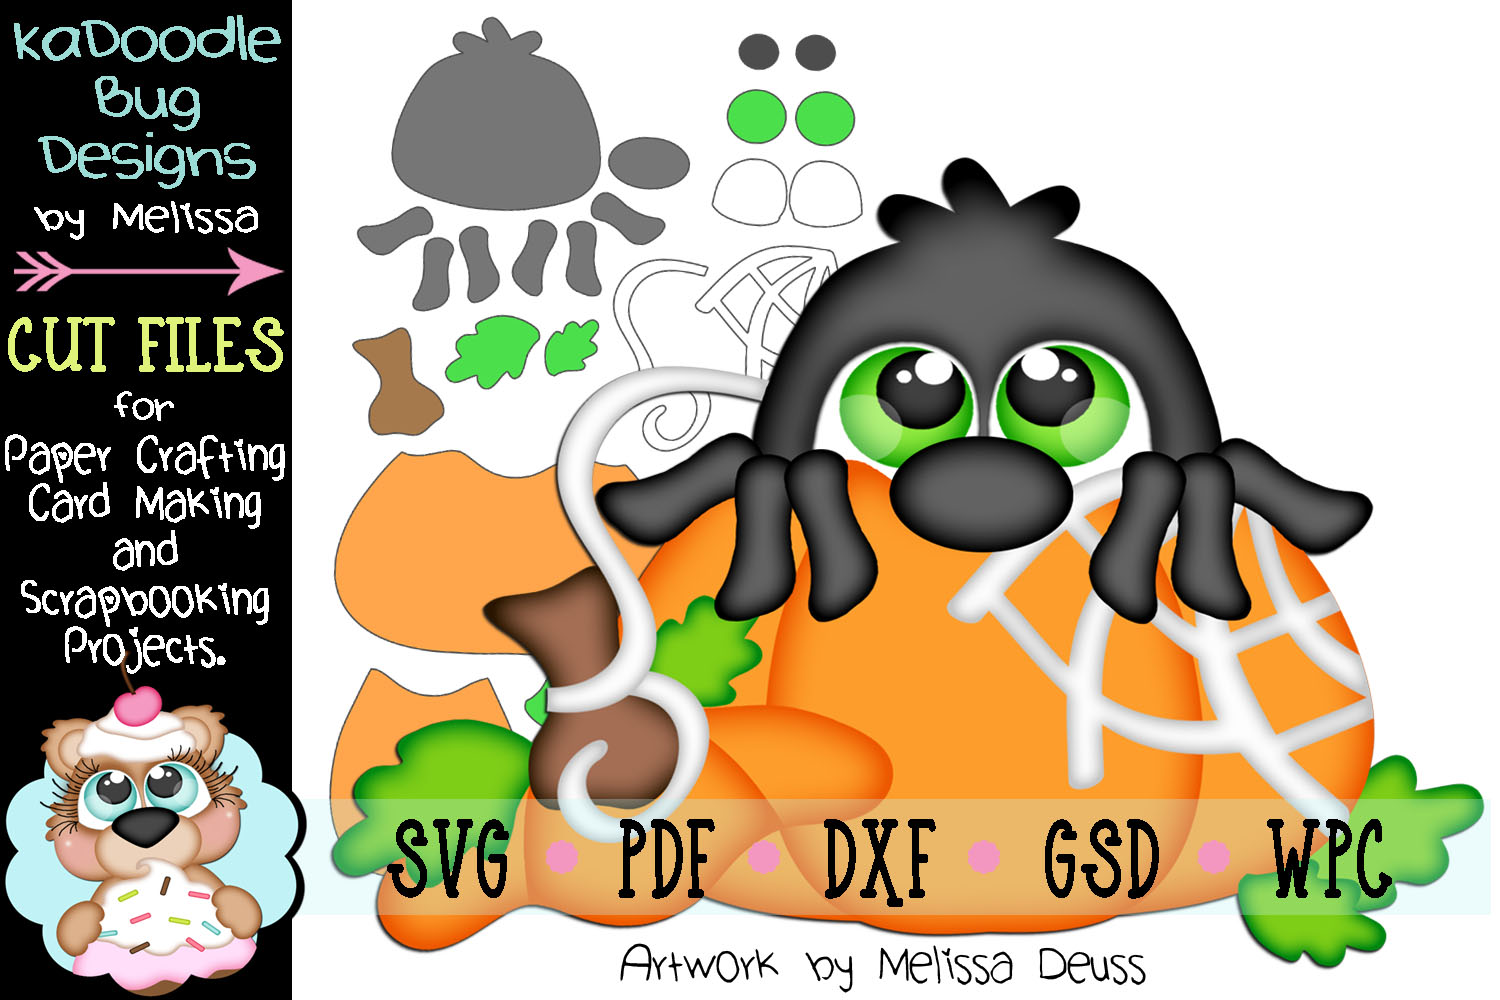 Fall Pumpkin Peeker Spider Cut File - SVG PDF DXF GSD WPC example image 1